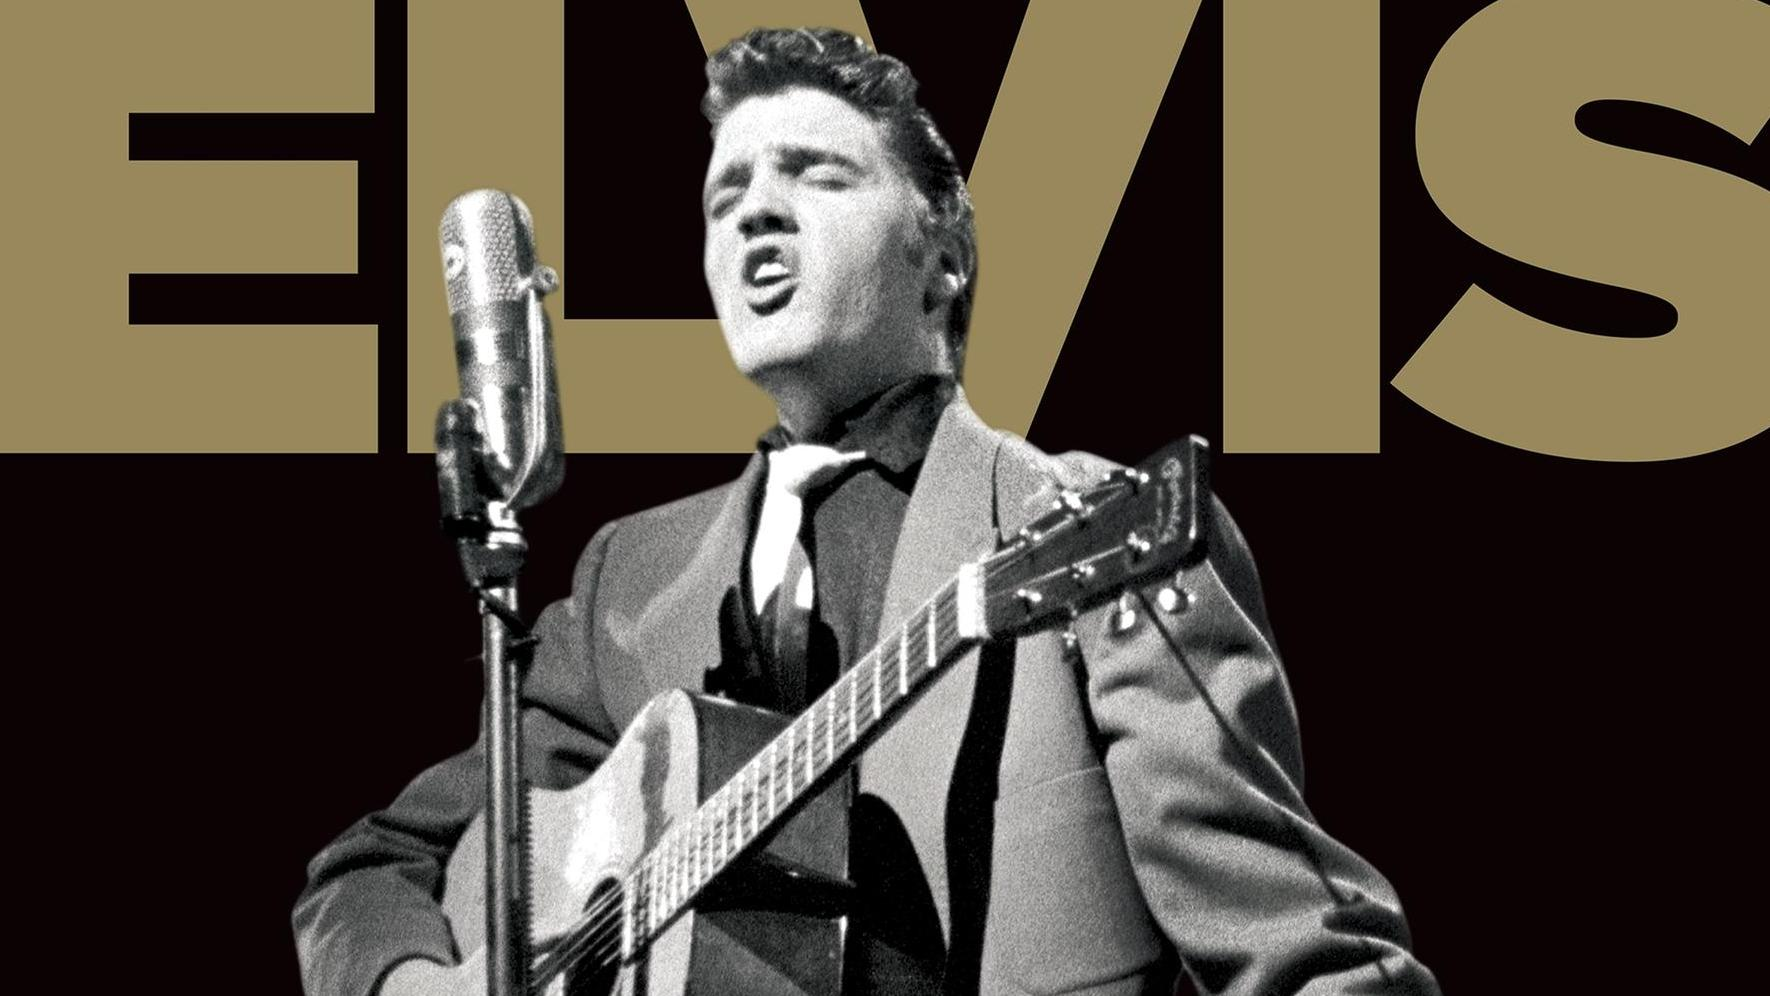 Elvis Presley-Lebenslauf: King of Rock 'n' Roll